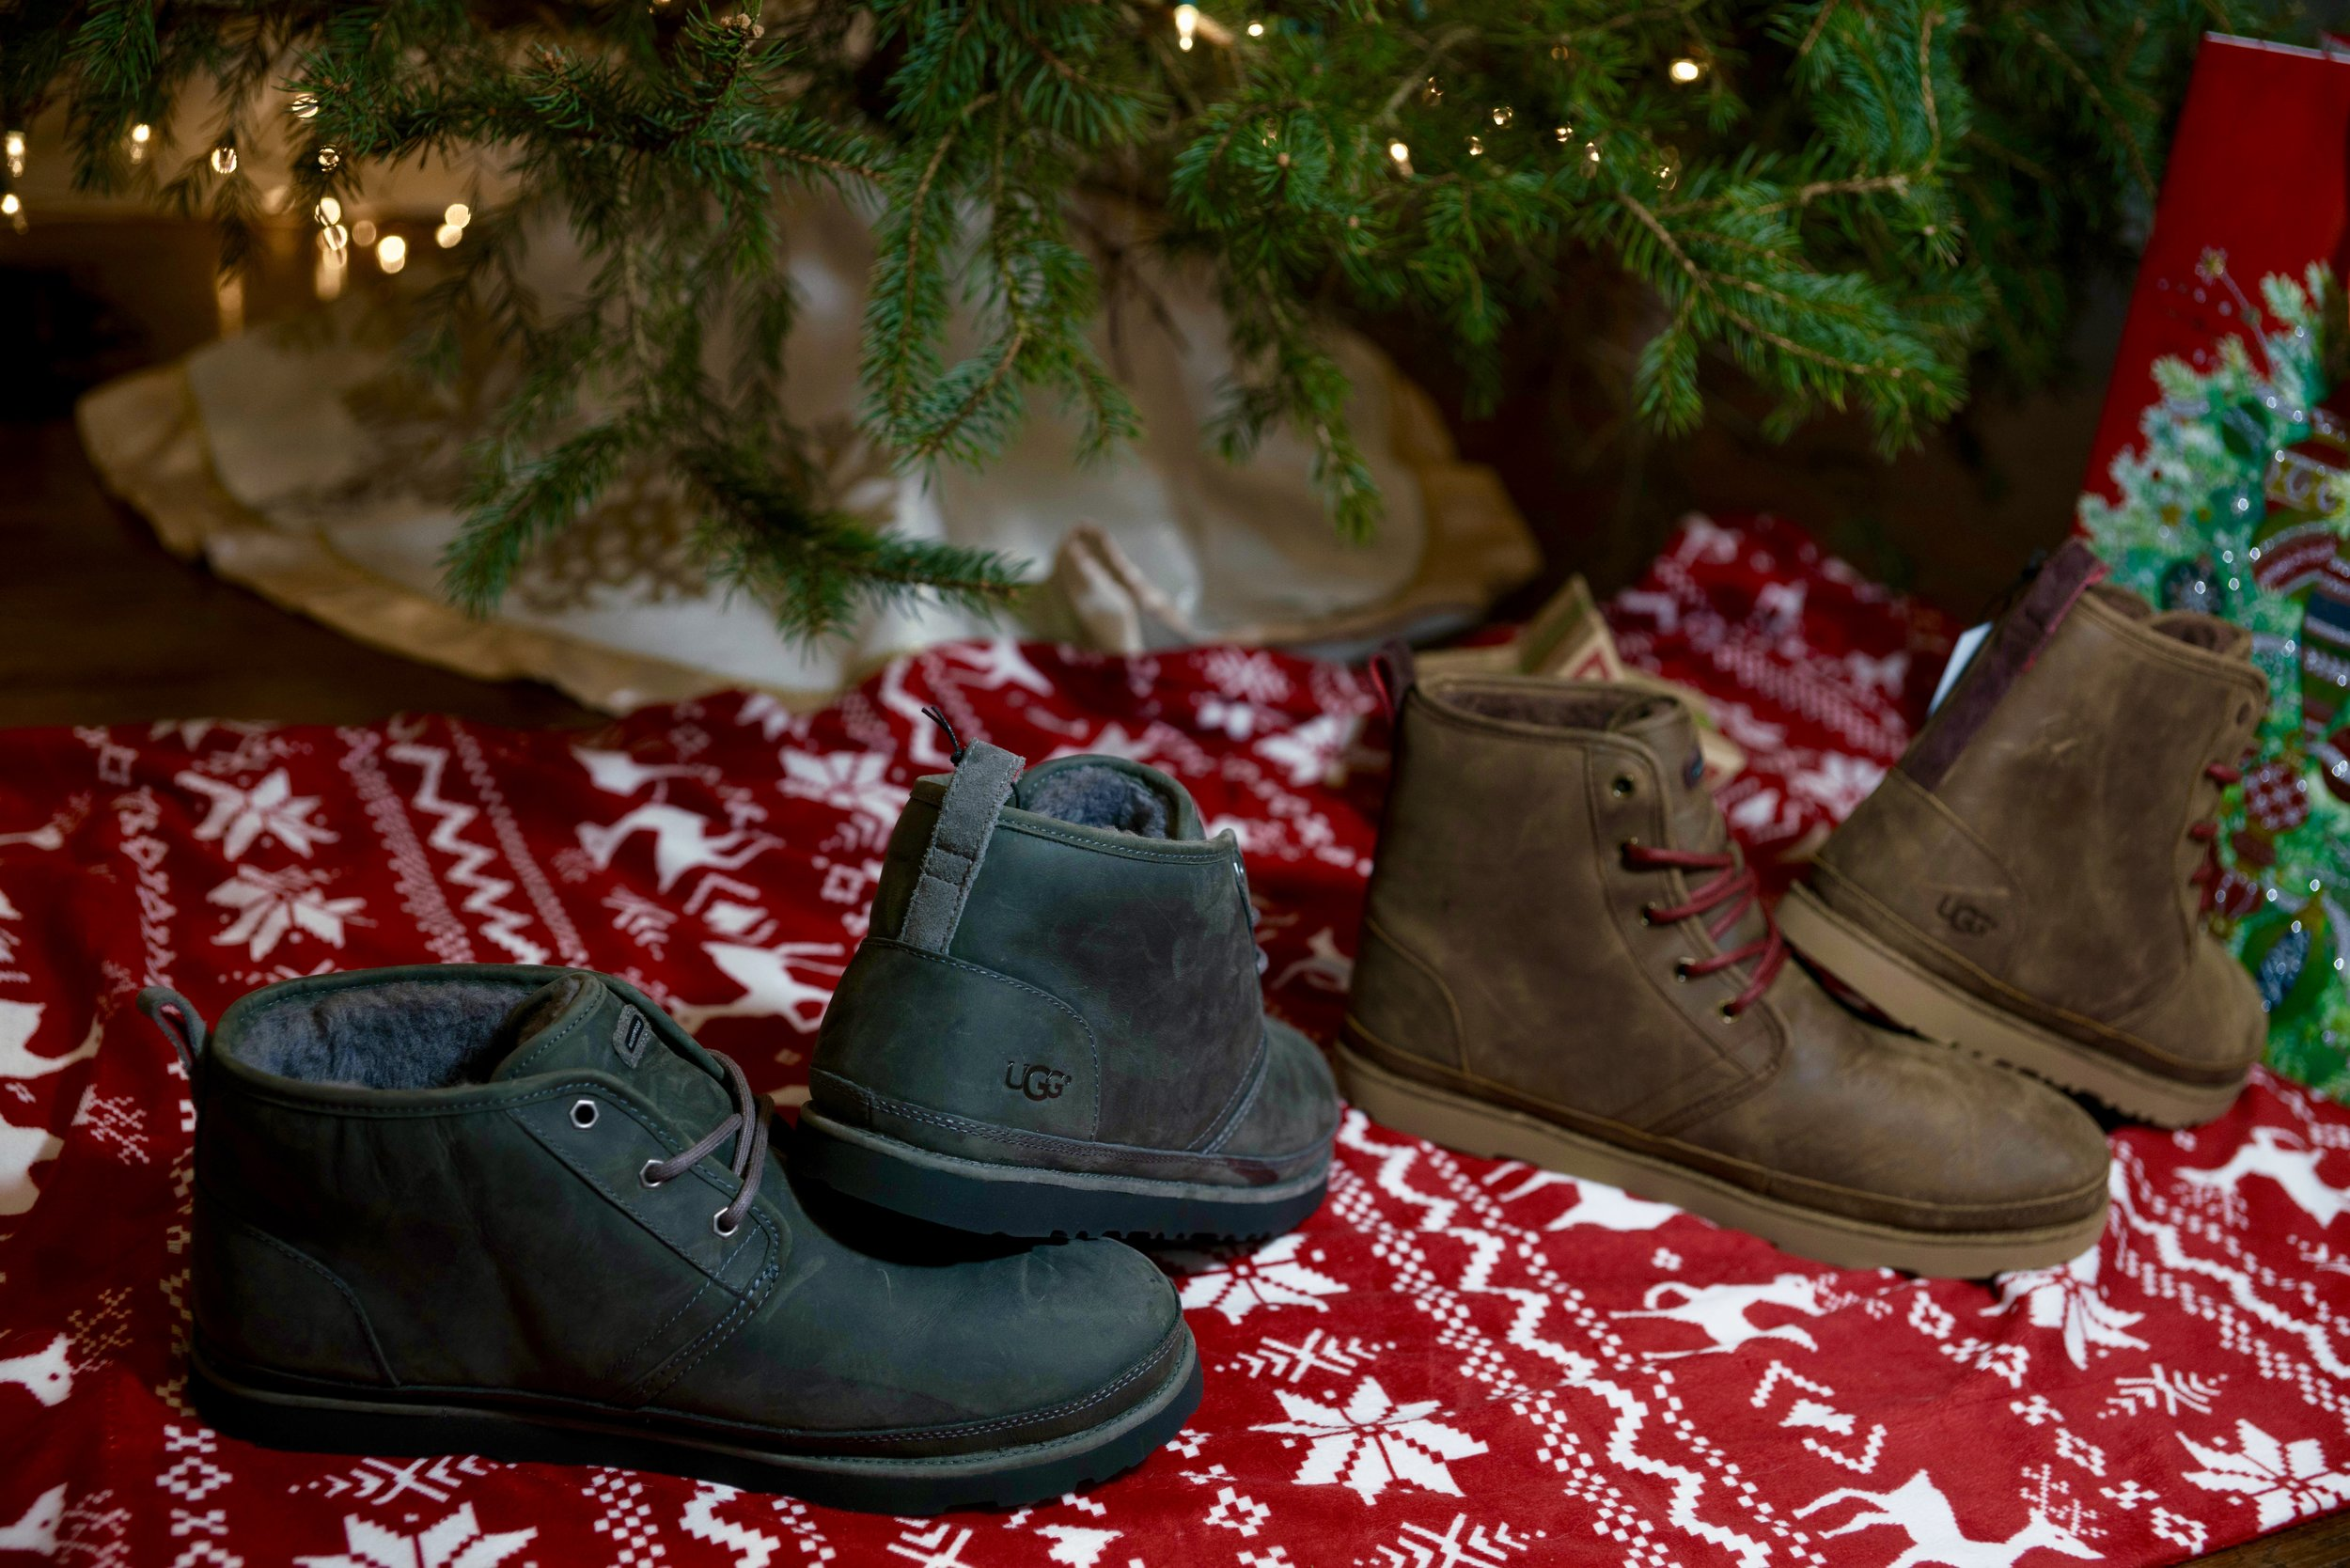 Classic & Cozy - Just what Santa ordered